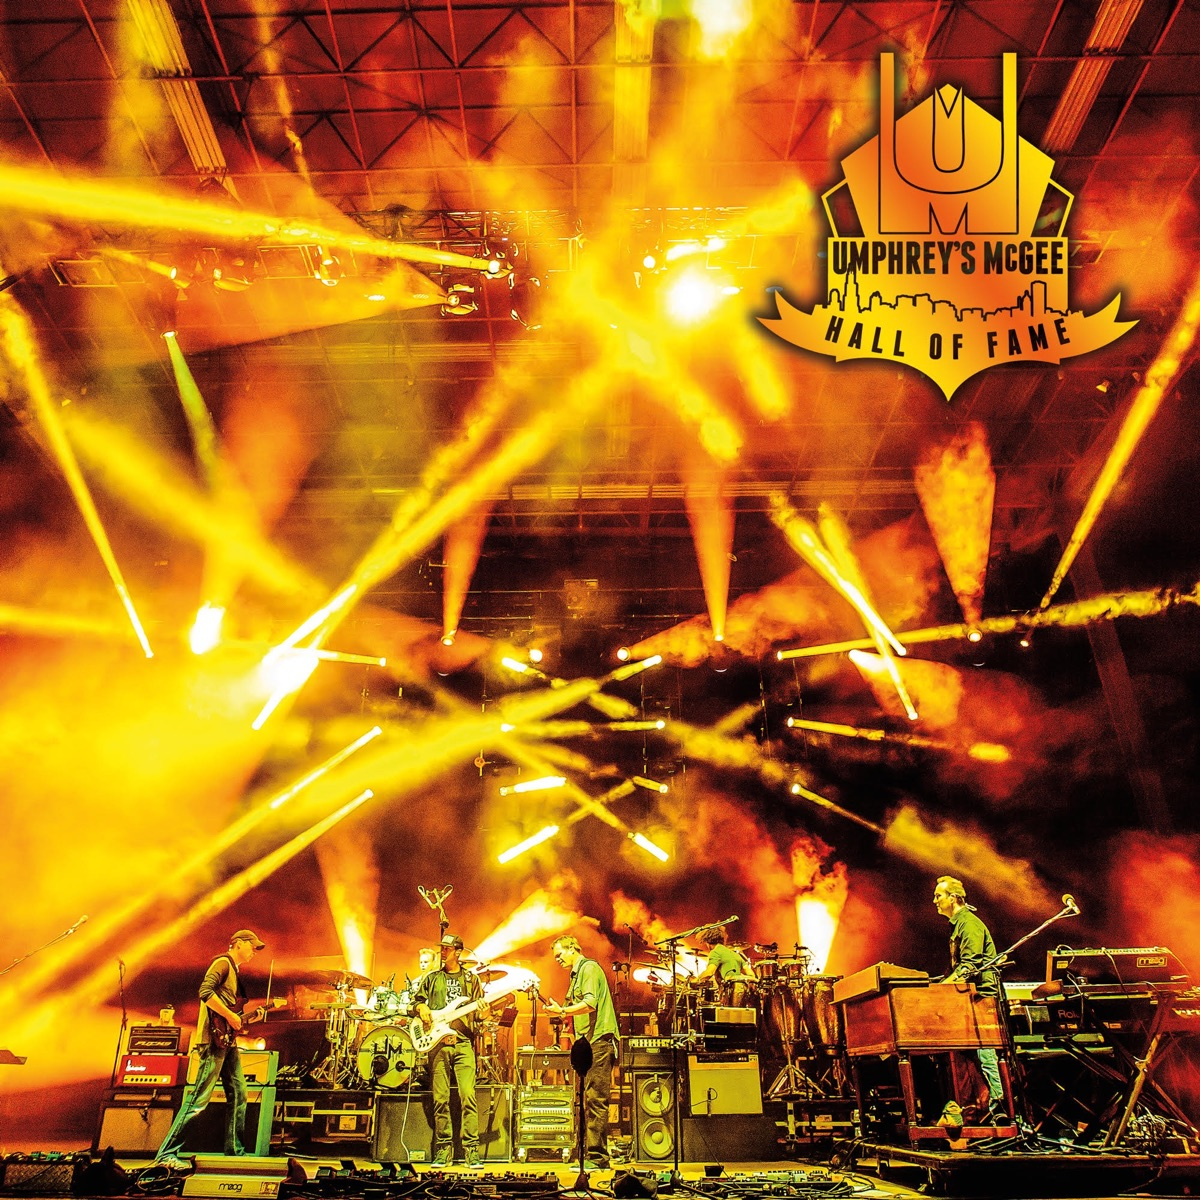 Hall of Fame Class Of 2016 Umphreys McGee CD cover